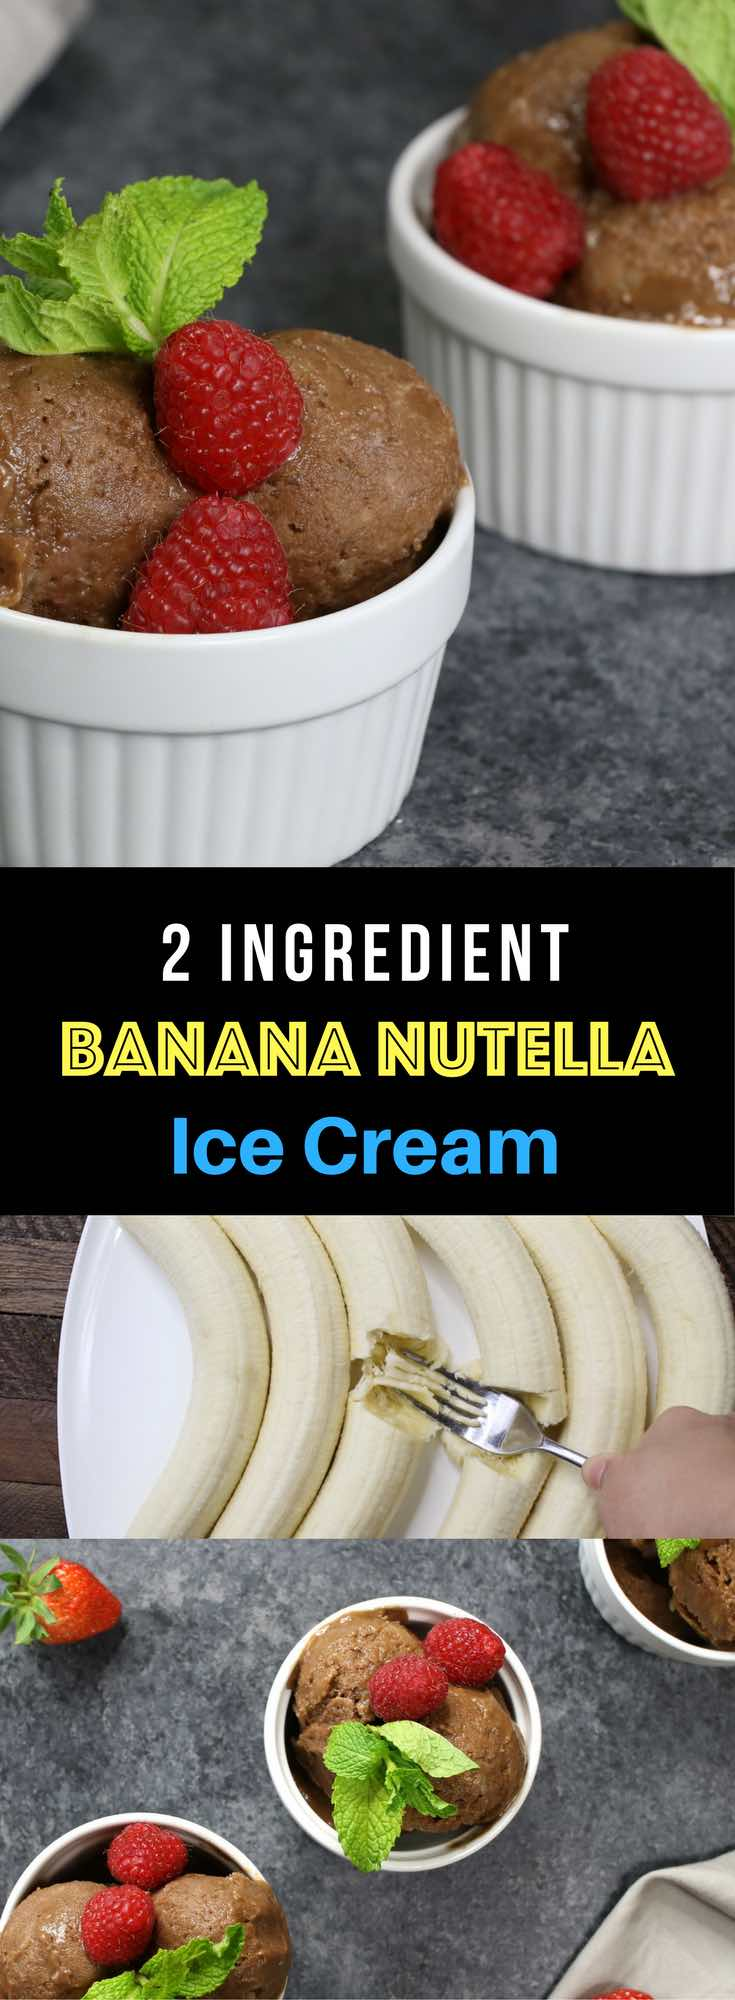 2 Ingredient Nutella Banana Ice Cream – Simple kid friendly ice cream with only 2 ingredients: Nutella and banana. What goes together better and chocolate and banana? No churn. No equipment is needed and only takes 5 minutes to prepare. It is easiest ice cream you will ever make! Video recipe.